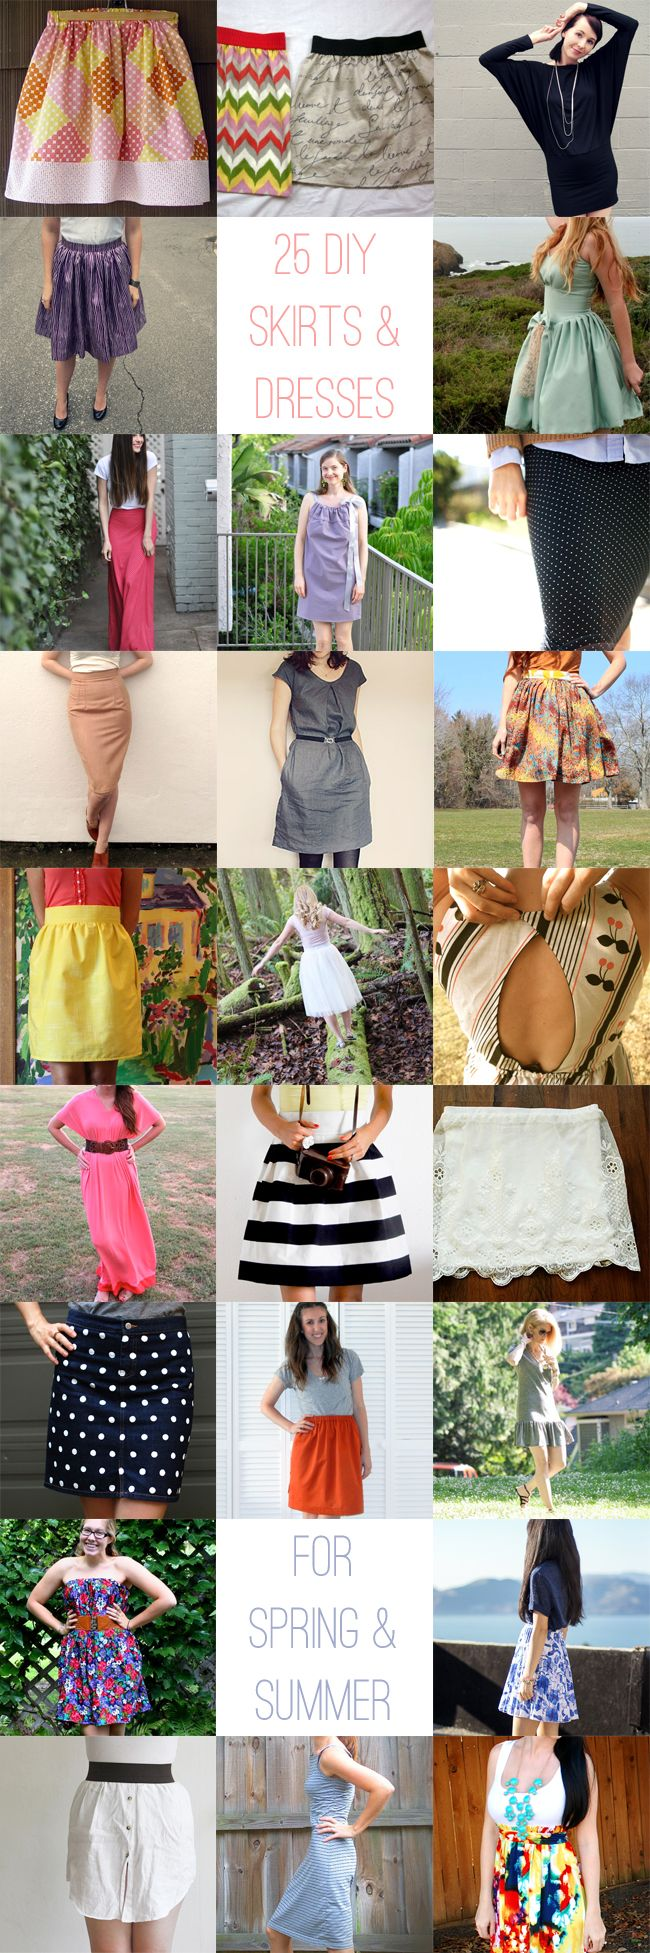 25 DIY Dresses and Skirts for Spring and Summer | http://hellonatural.co/25-diy-dresses-skirts-for-spring-summer/